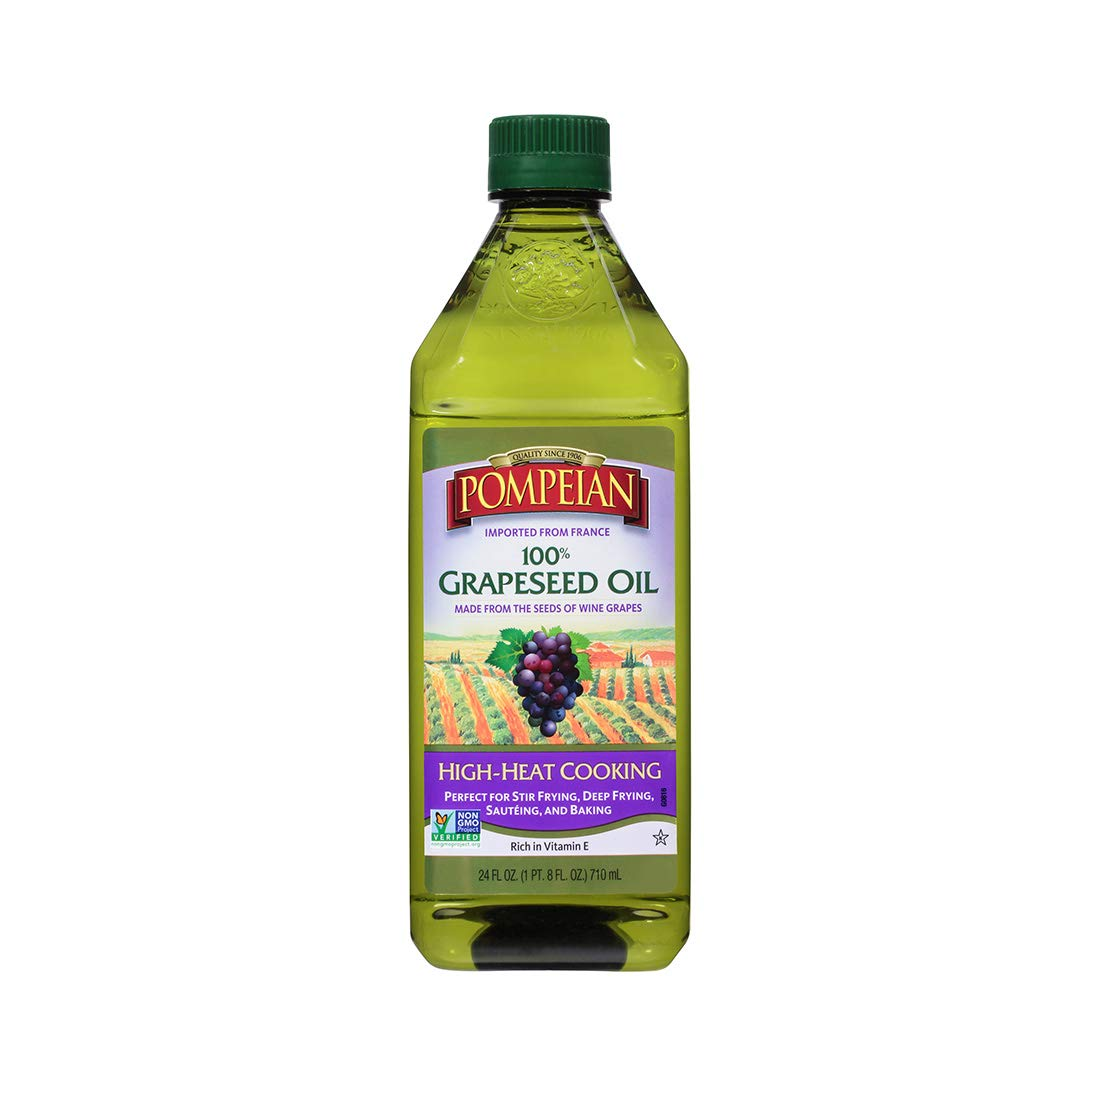 Pompeian Grapeseed Oil - 24 Ounce (Pack of 6) by Pompeian